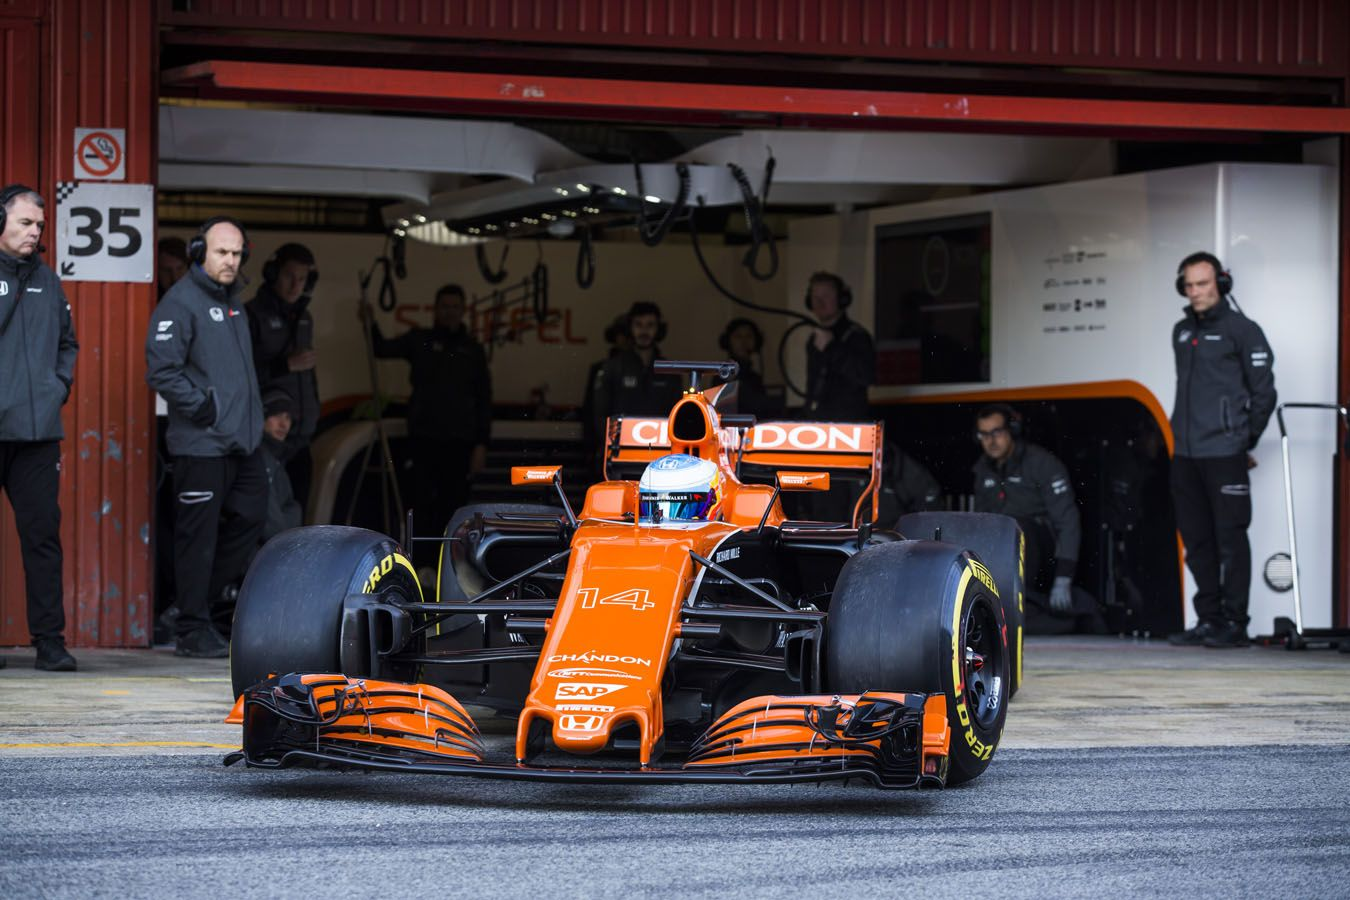 McLaren Formula 1 - Barcelona Filming Day: In Pictures